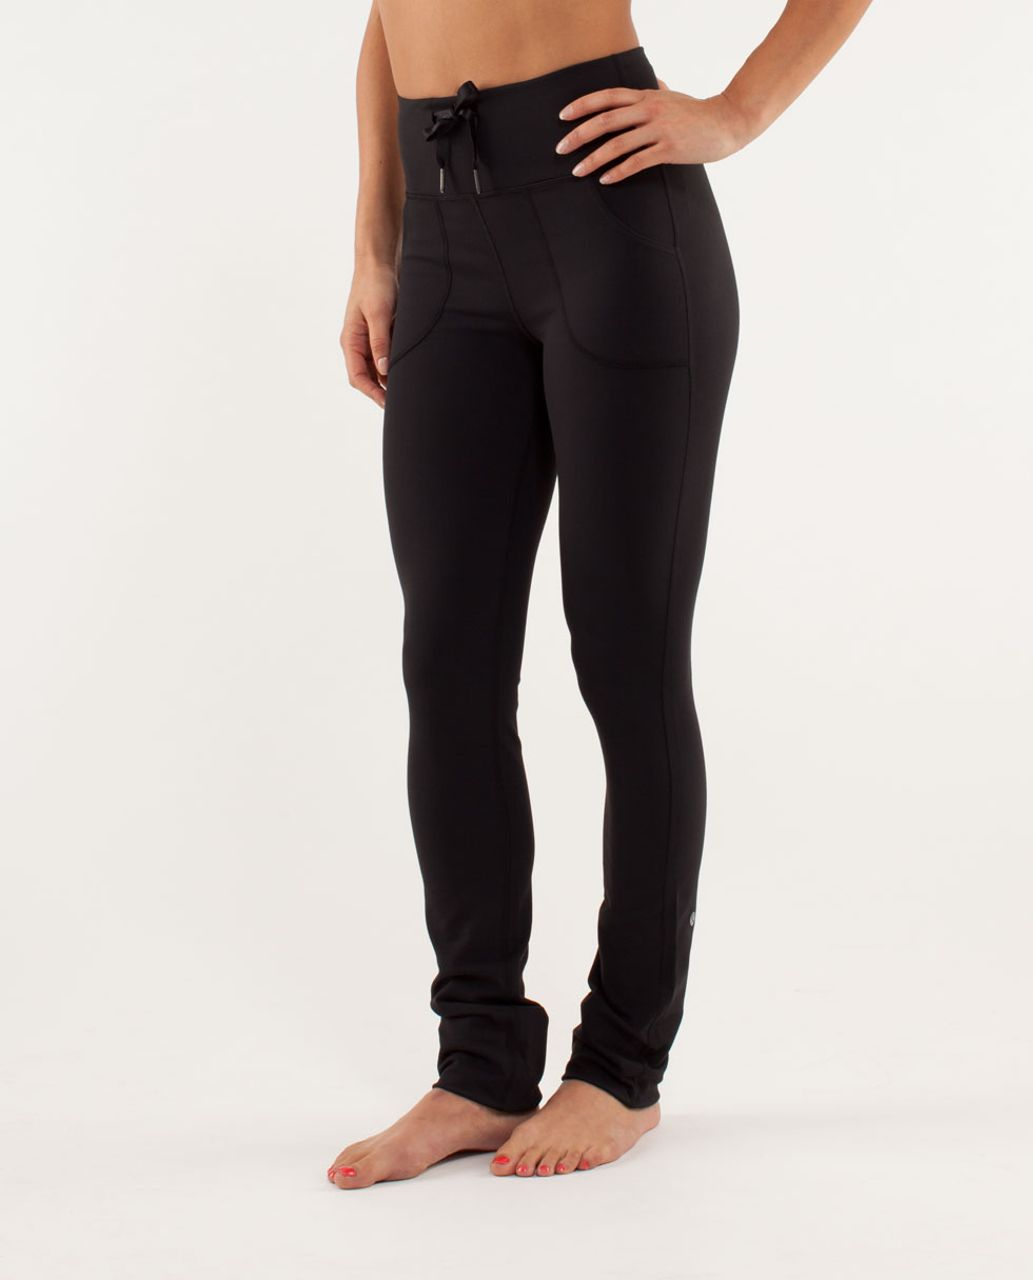 7418bac4cb Lululemon Skinny Will Pant - Black - lulu fanatics